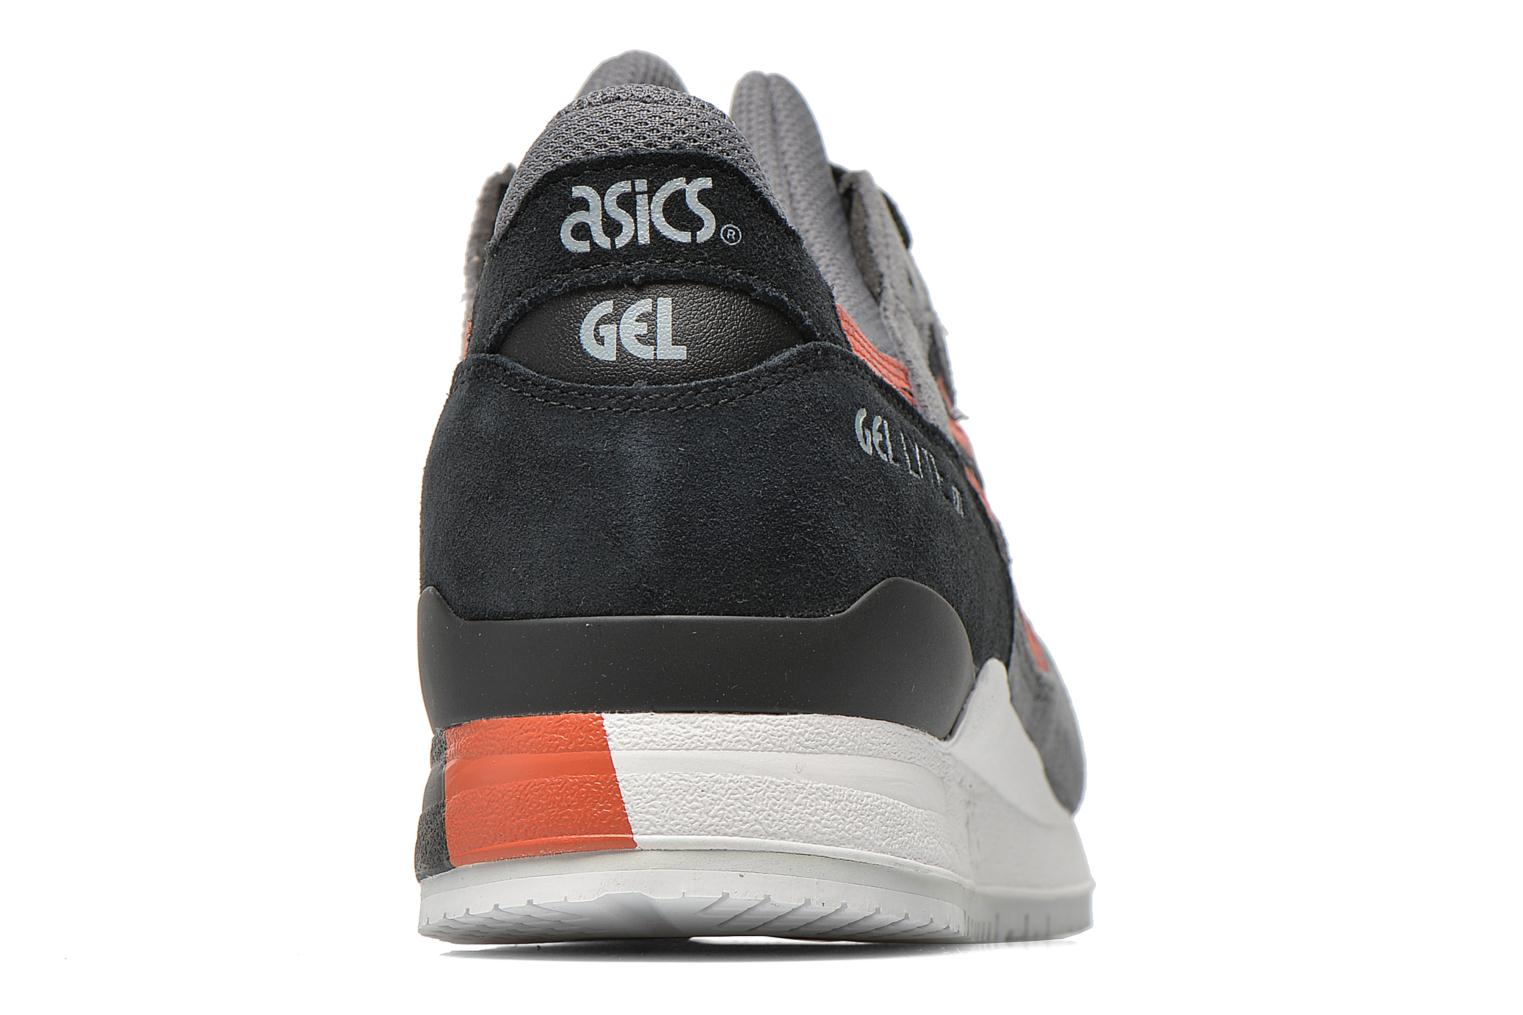 Gel-lyte III Black/Chili